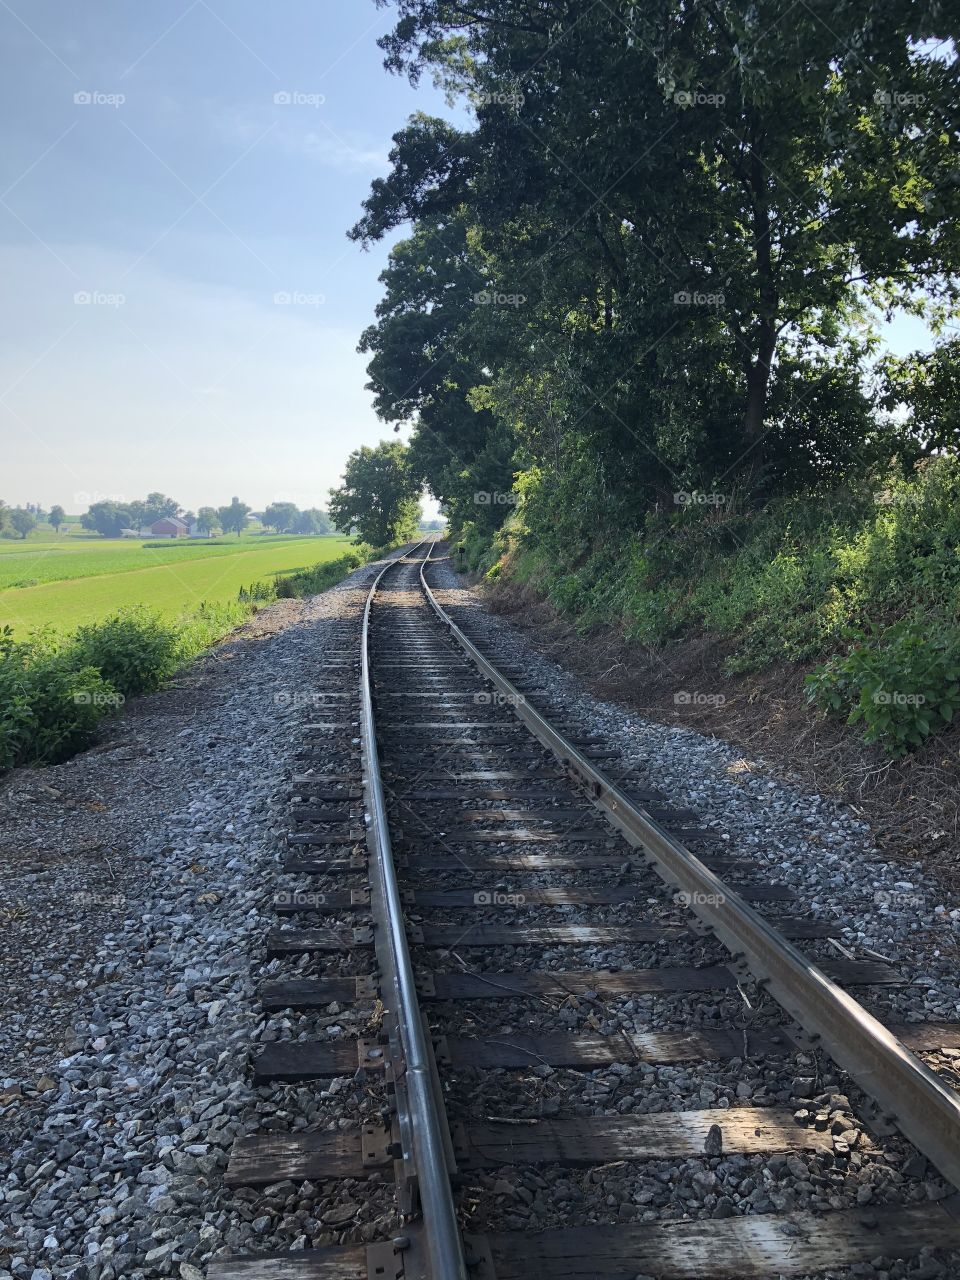 Looking down the tracks of the Strasburg Railroad toward East Strasburg. This picture was taken from the Blackhorse Road grade crossing, otherwise known as Carpenter's Crossing.